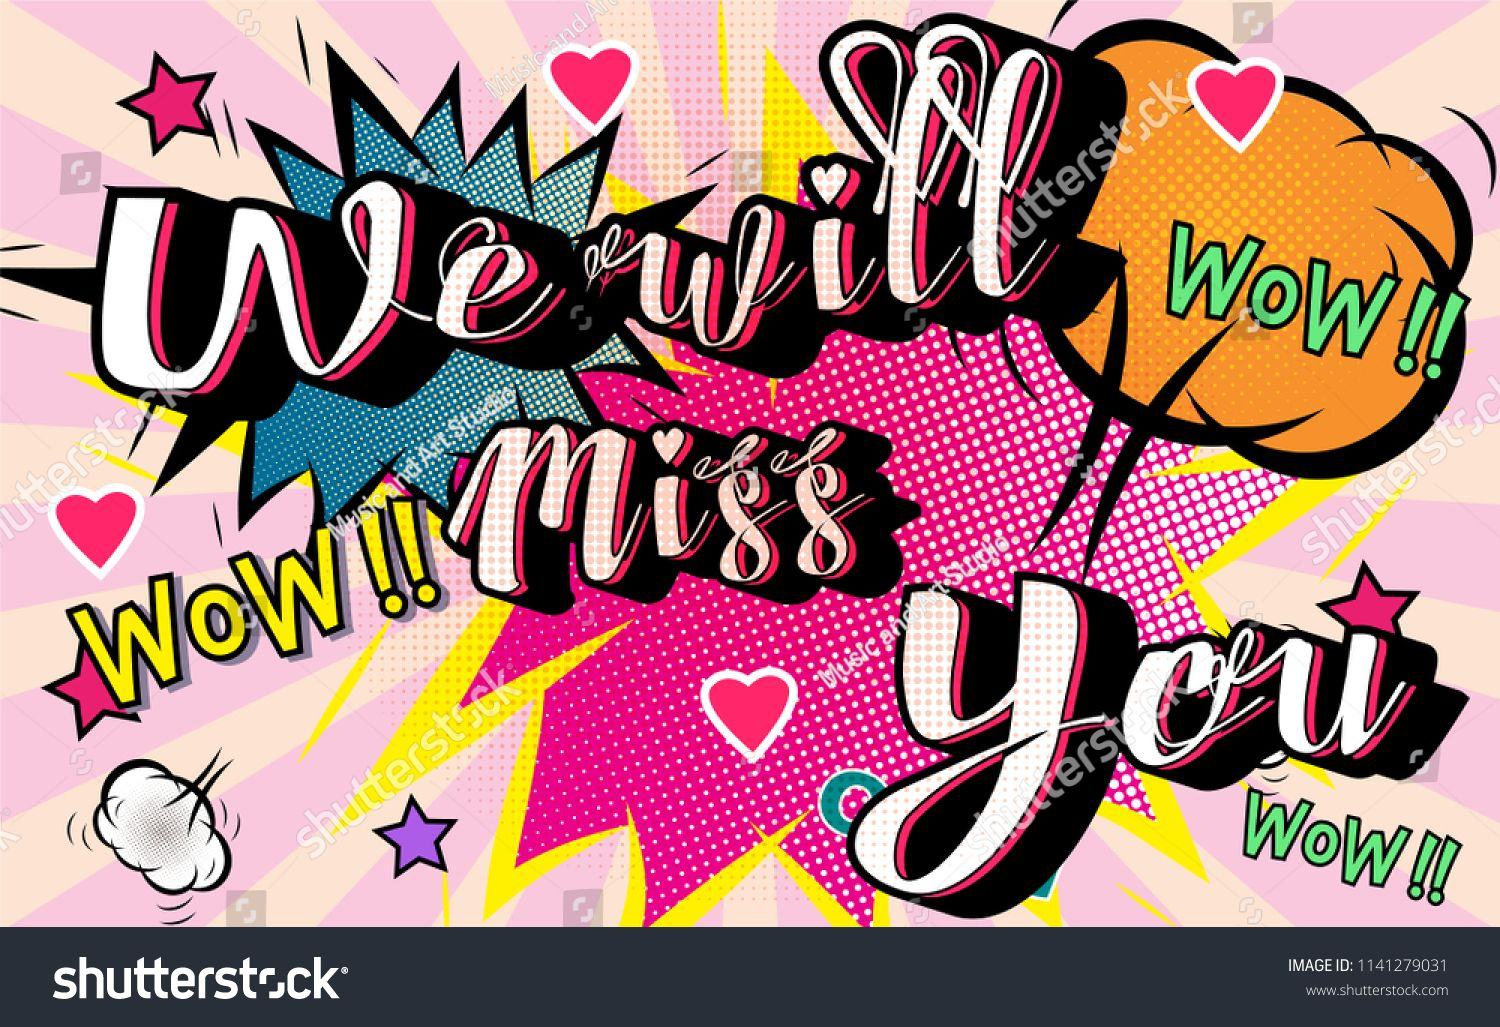 Farewell Party Template We Will Miss You Text Design Pop Art Comic Style Colorful Background For T Shirt Print Banne Banner Template Flyer Template Templates